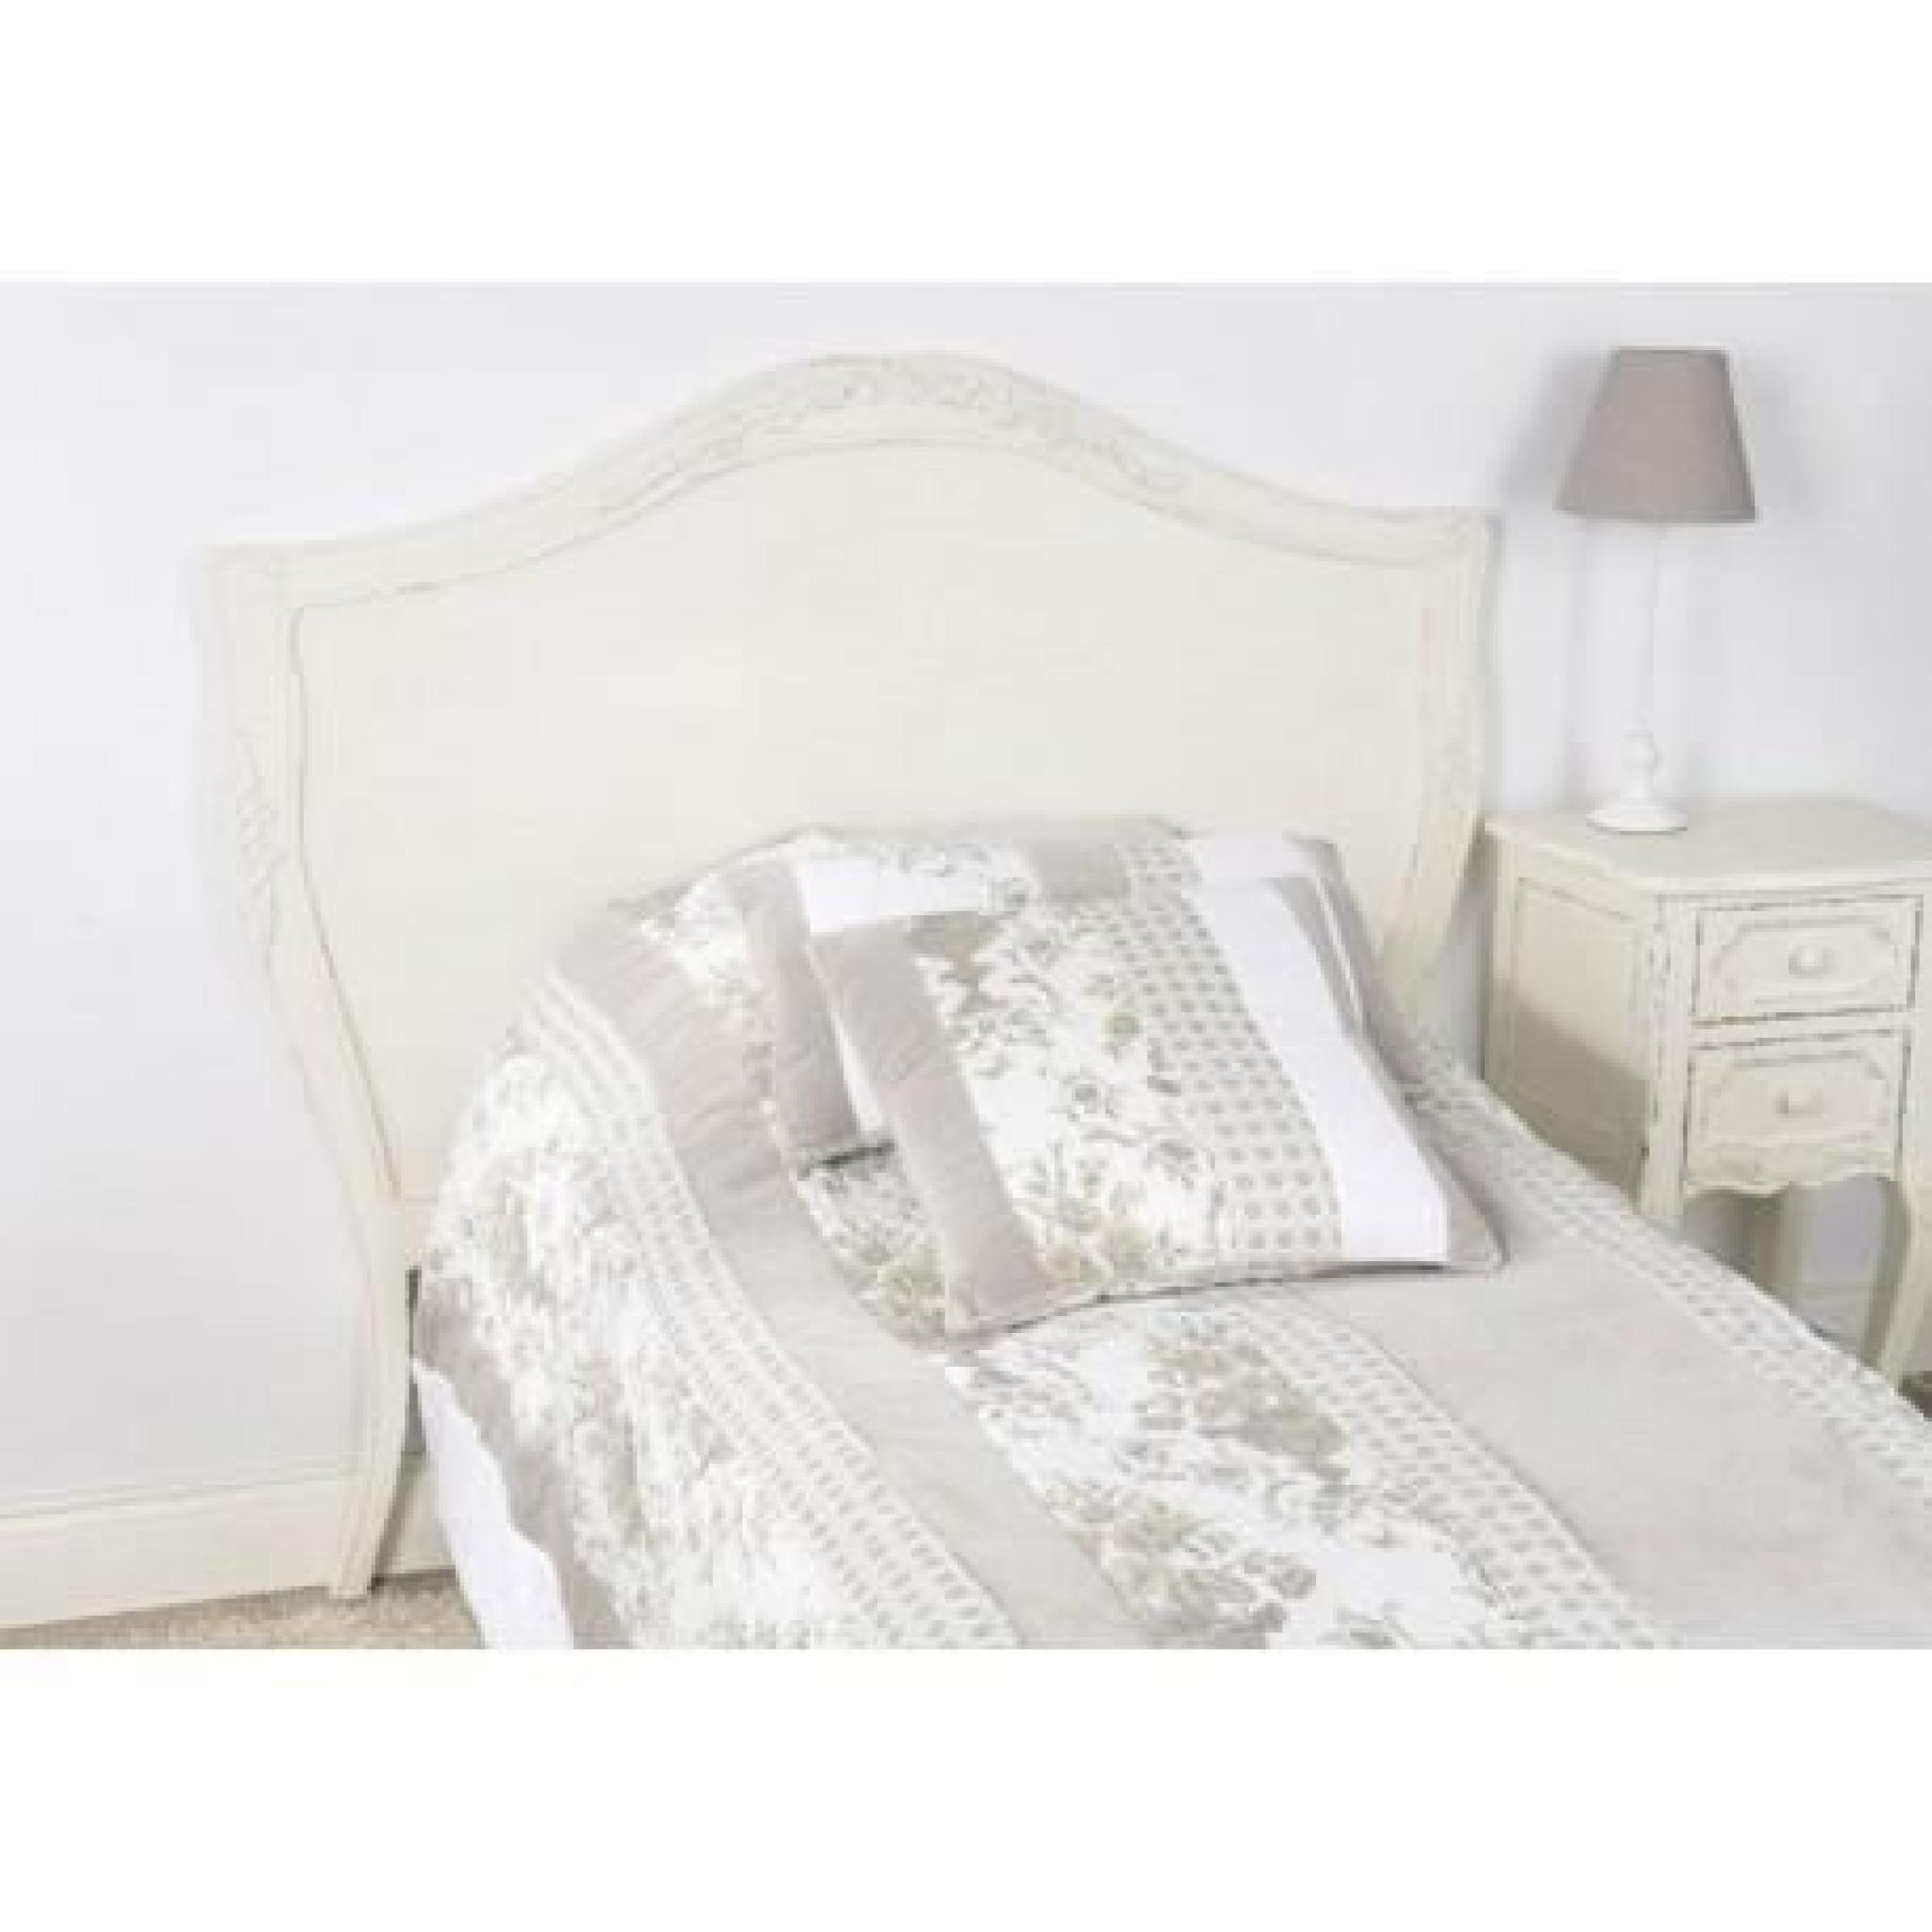 t te de lit en bois vieillie blanc antique 100 cm comtesse amadeus achat vente tete de lit pas. Black Bedroom Furniture Sets. Home Design Ideas